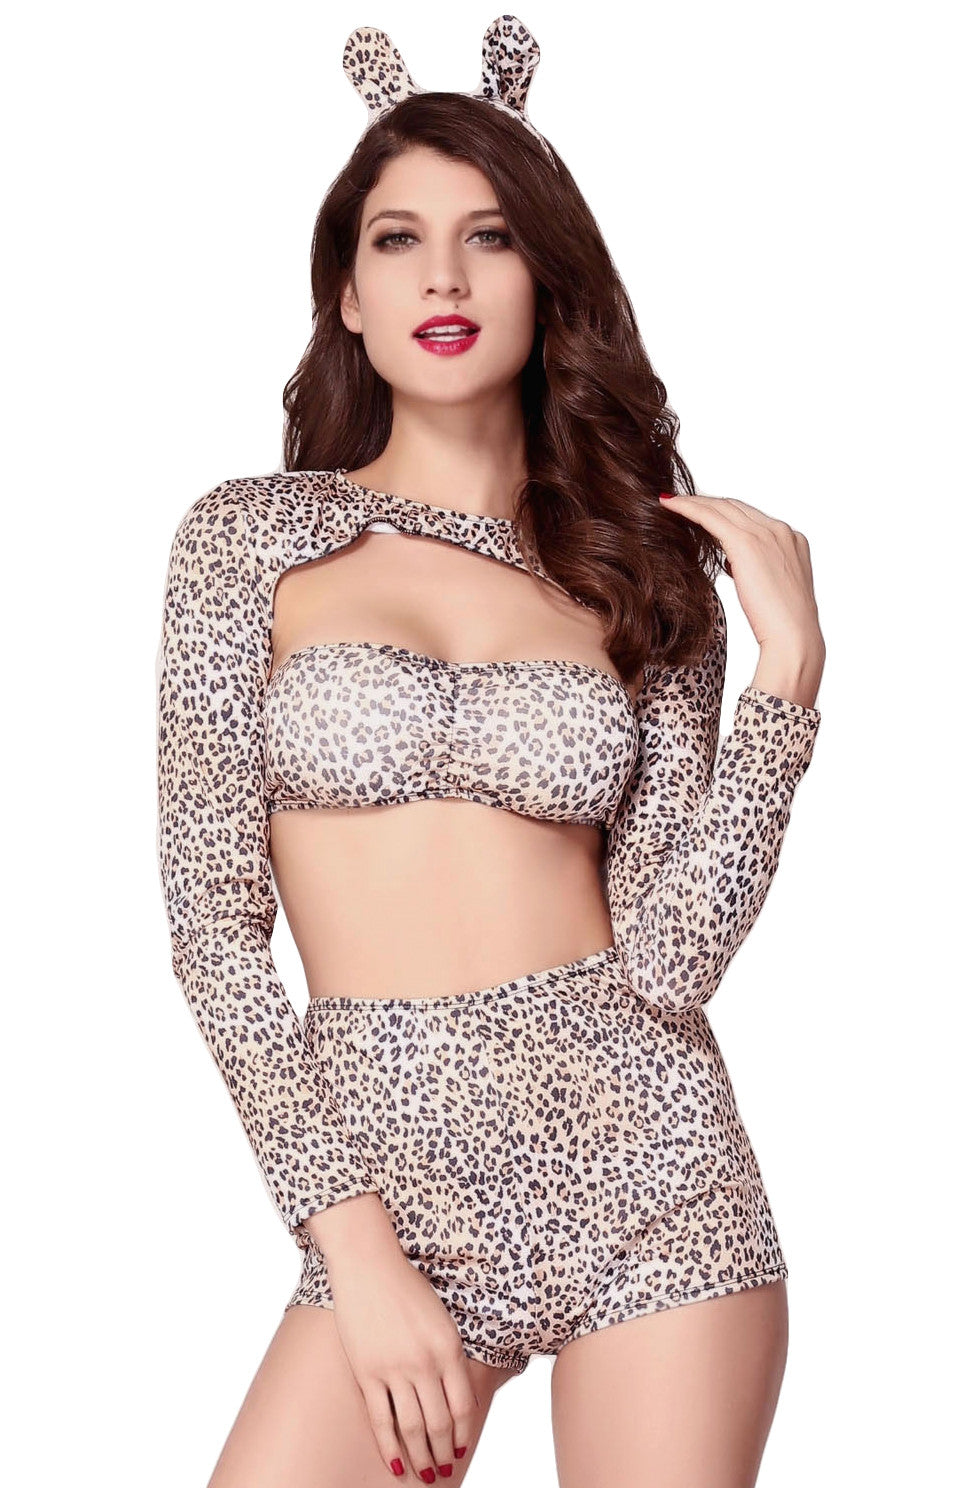 Sassy Cheetah; 3PC Lonbg Sleeve Top High Waist Bottoms & Ears